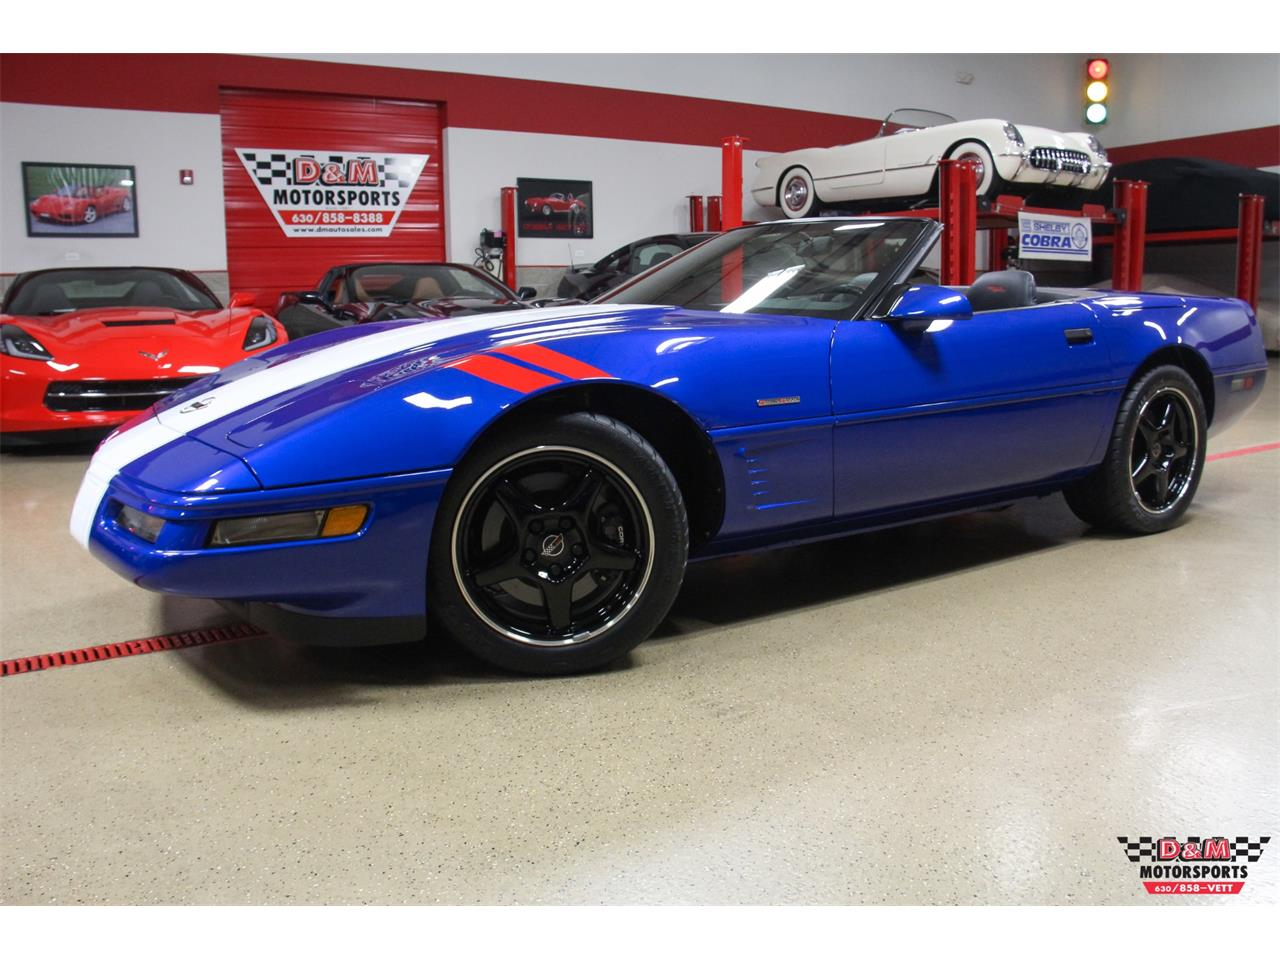 Large Picture of 1996 Corvette located in Illinois - $44,995.00 - LV9Z